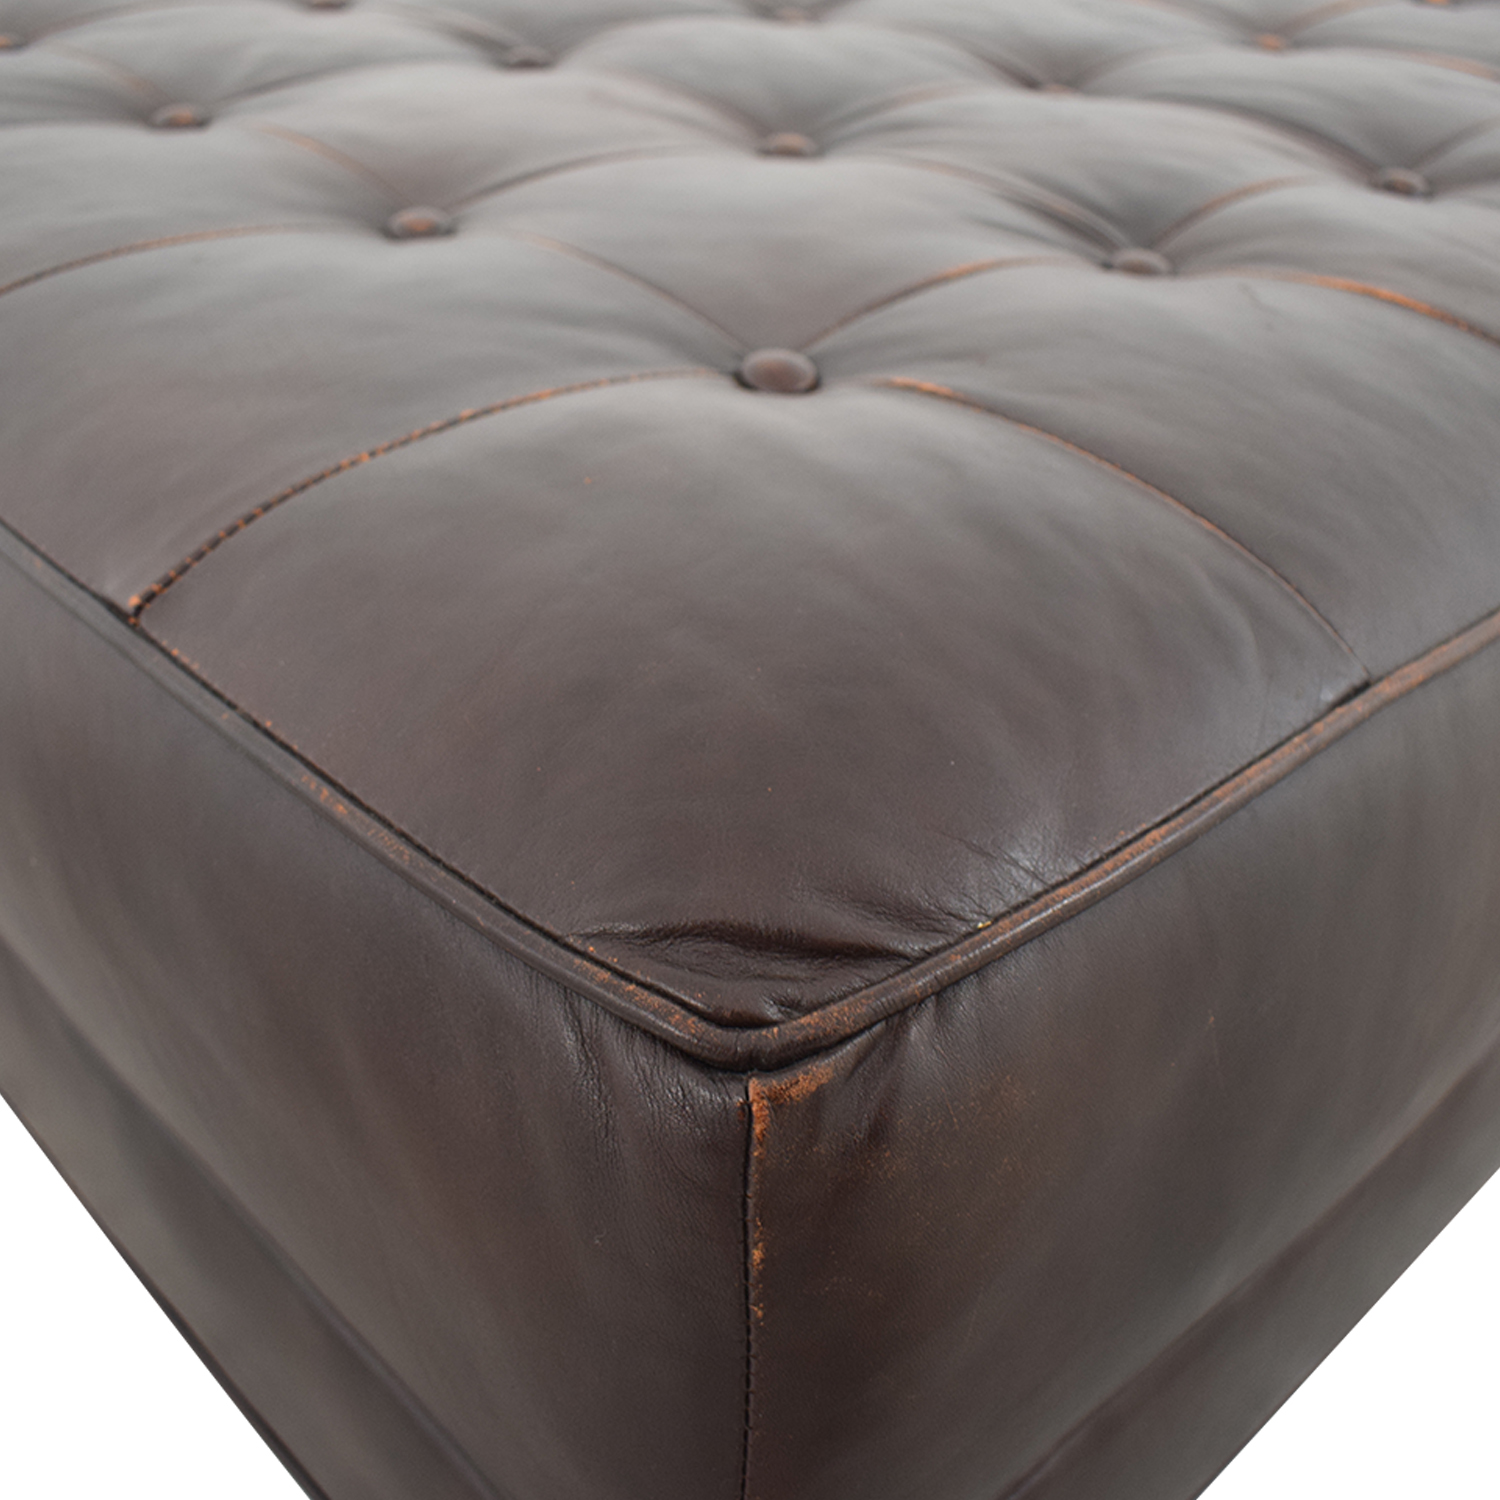 Crate & Barrel Crate & Barrel Brown Tufted Ottoman nyc